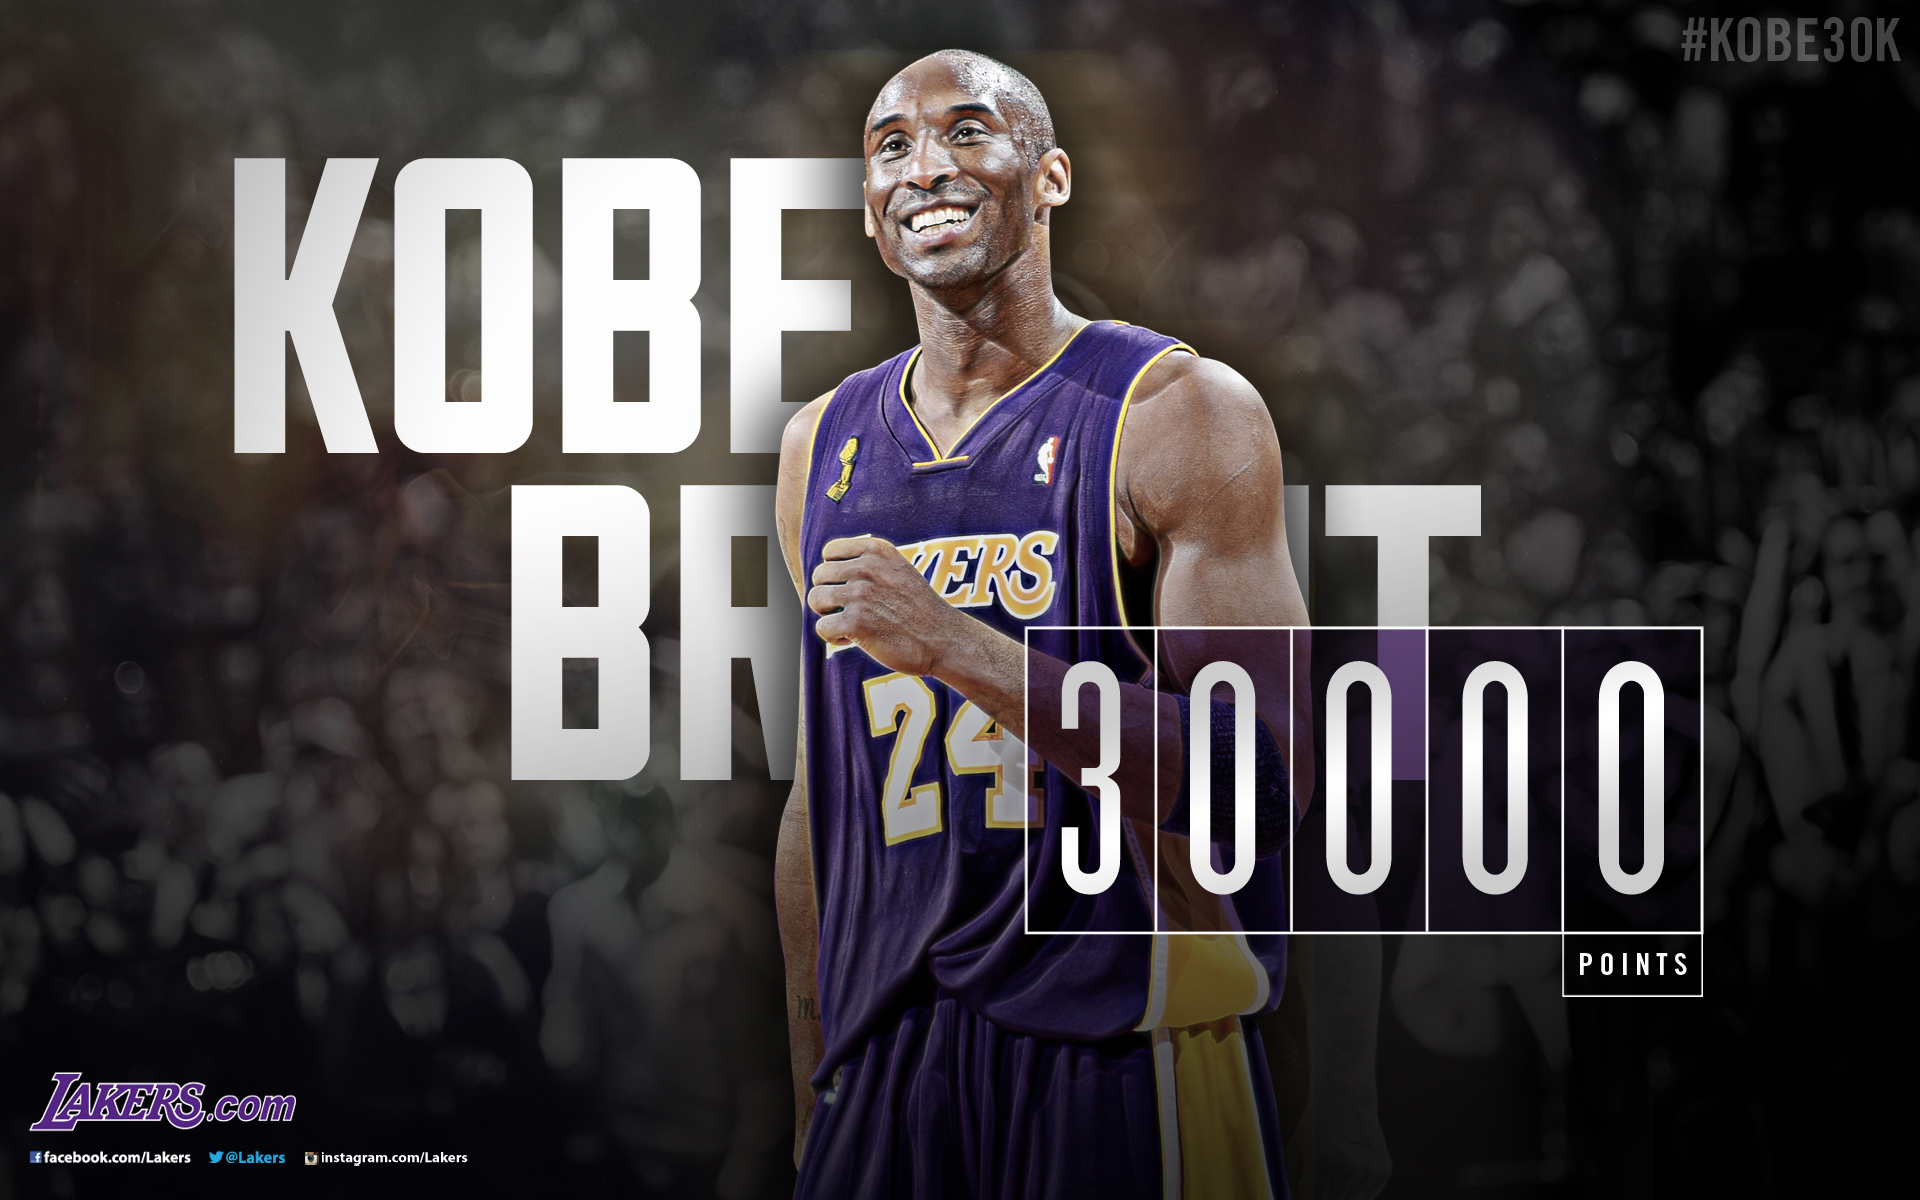 Kobe Bryant 30,000 Points